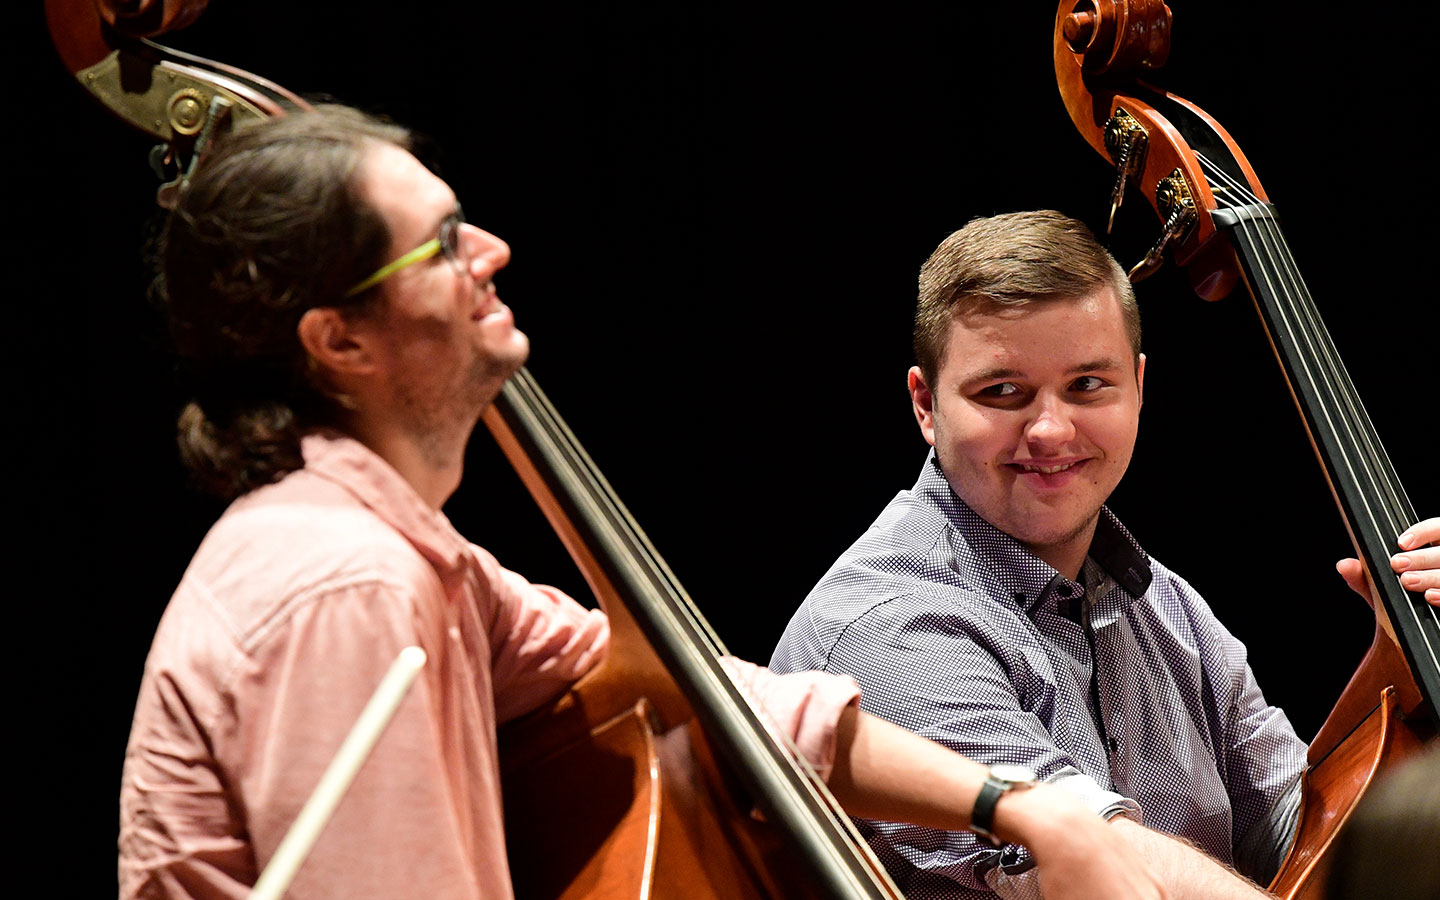 A school student being mentored on the double bass